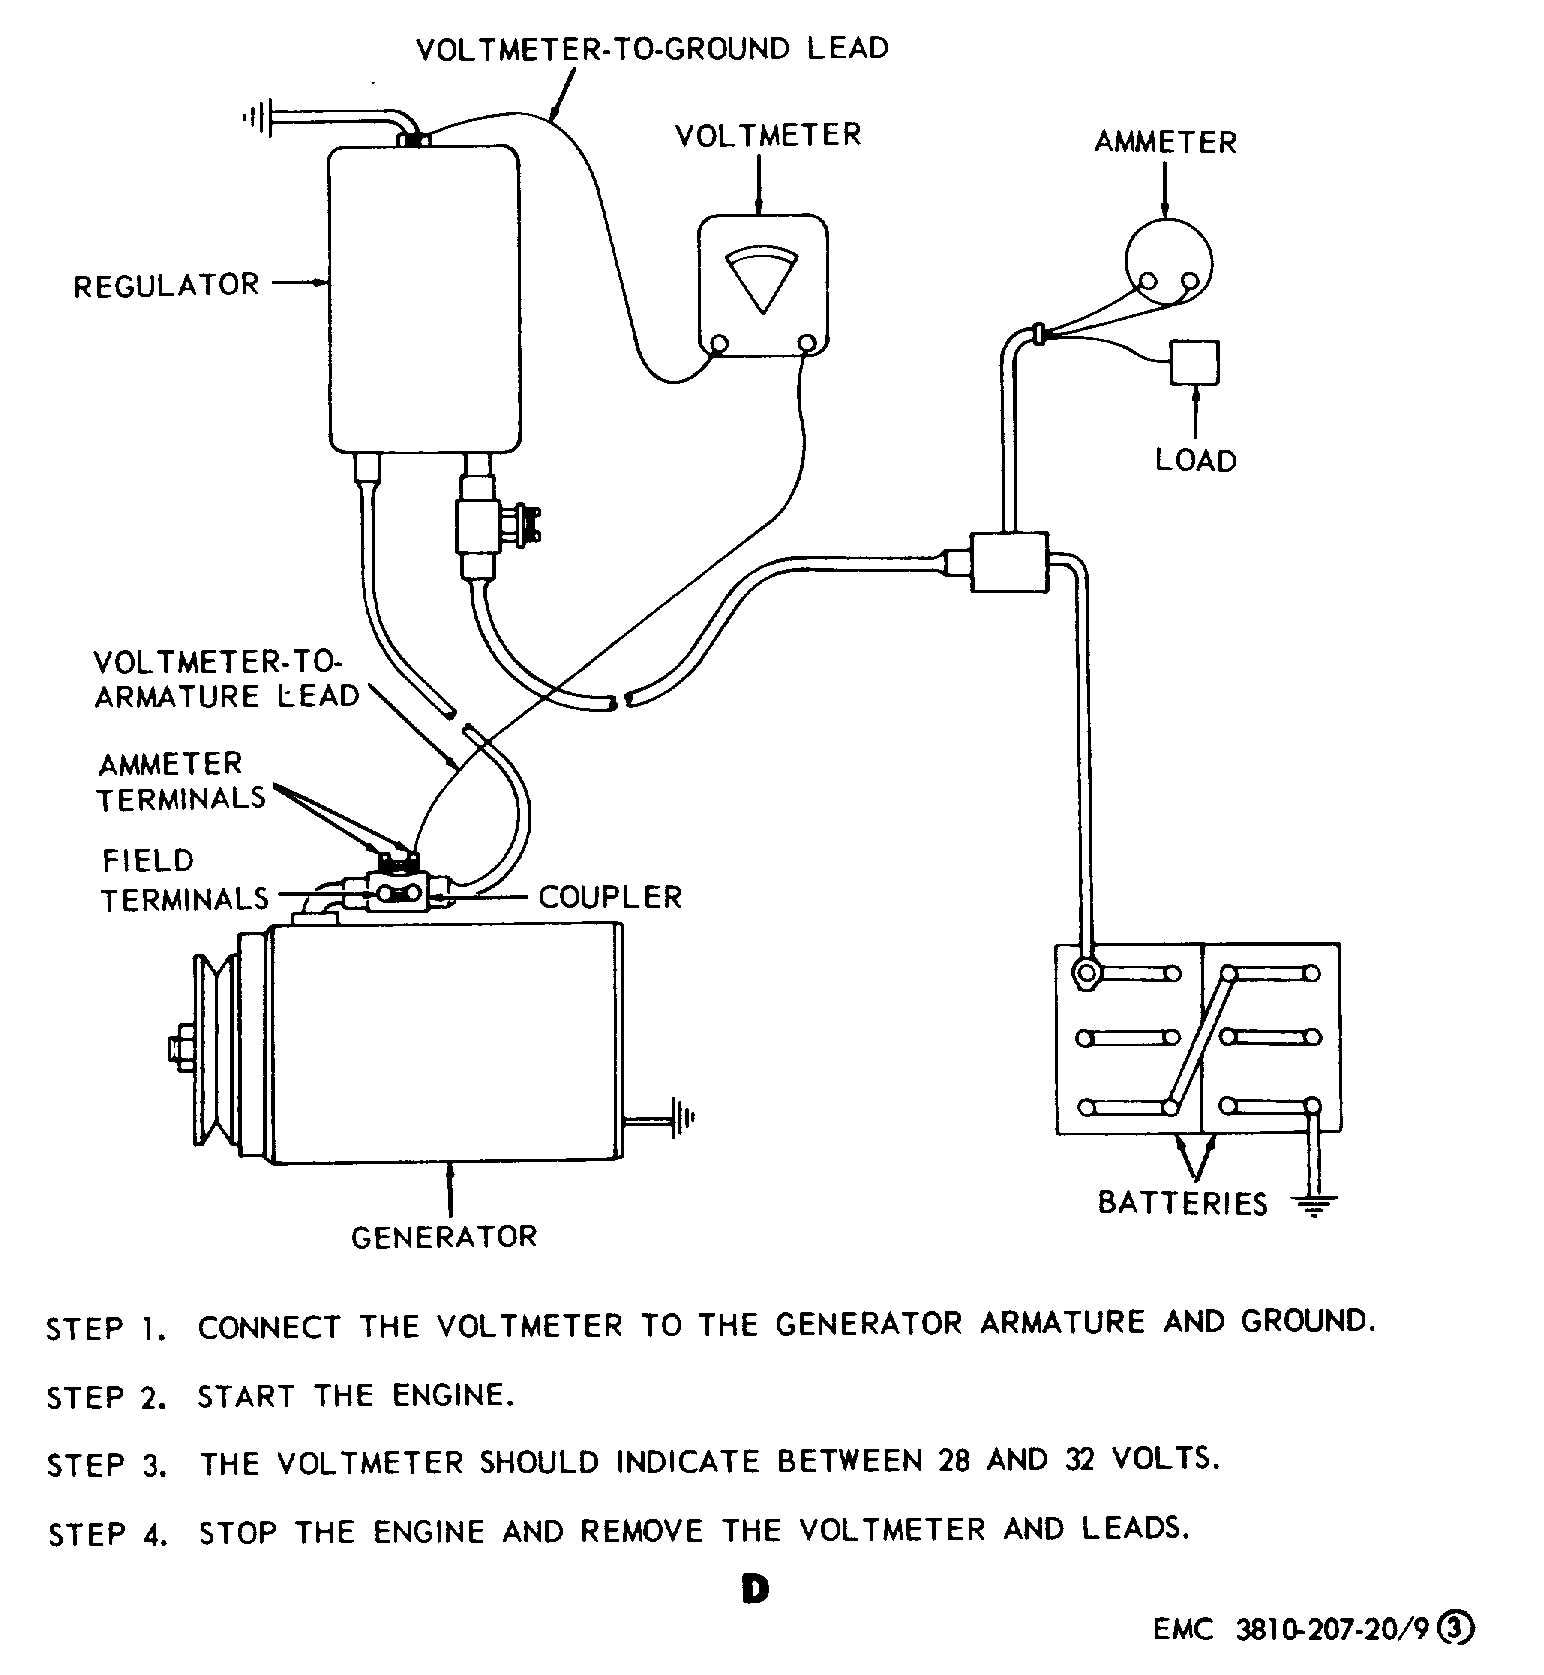 small resolution of 12 volt ammeter wiring diagram wiring diagram home 6 volt ammeter wiring